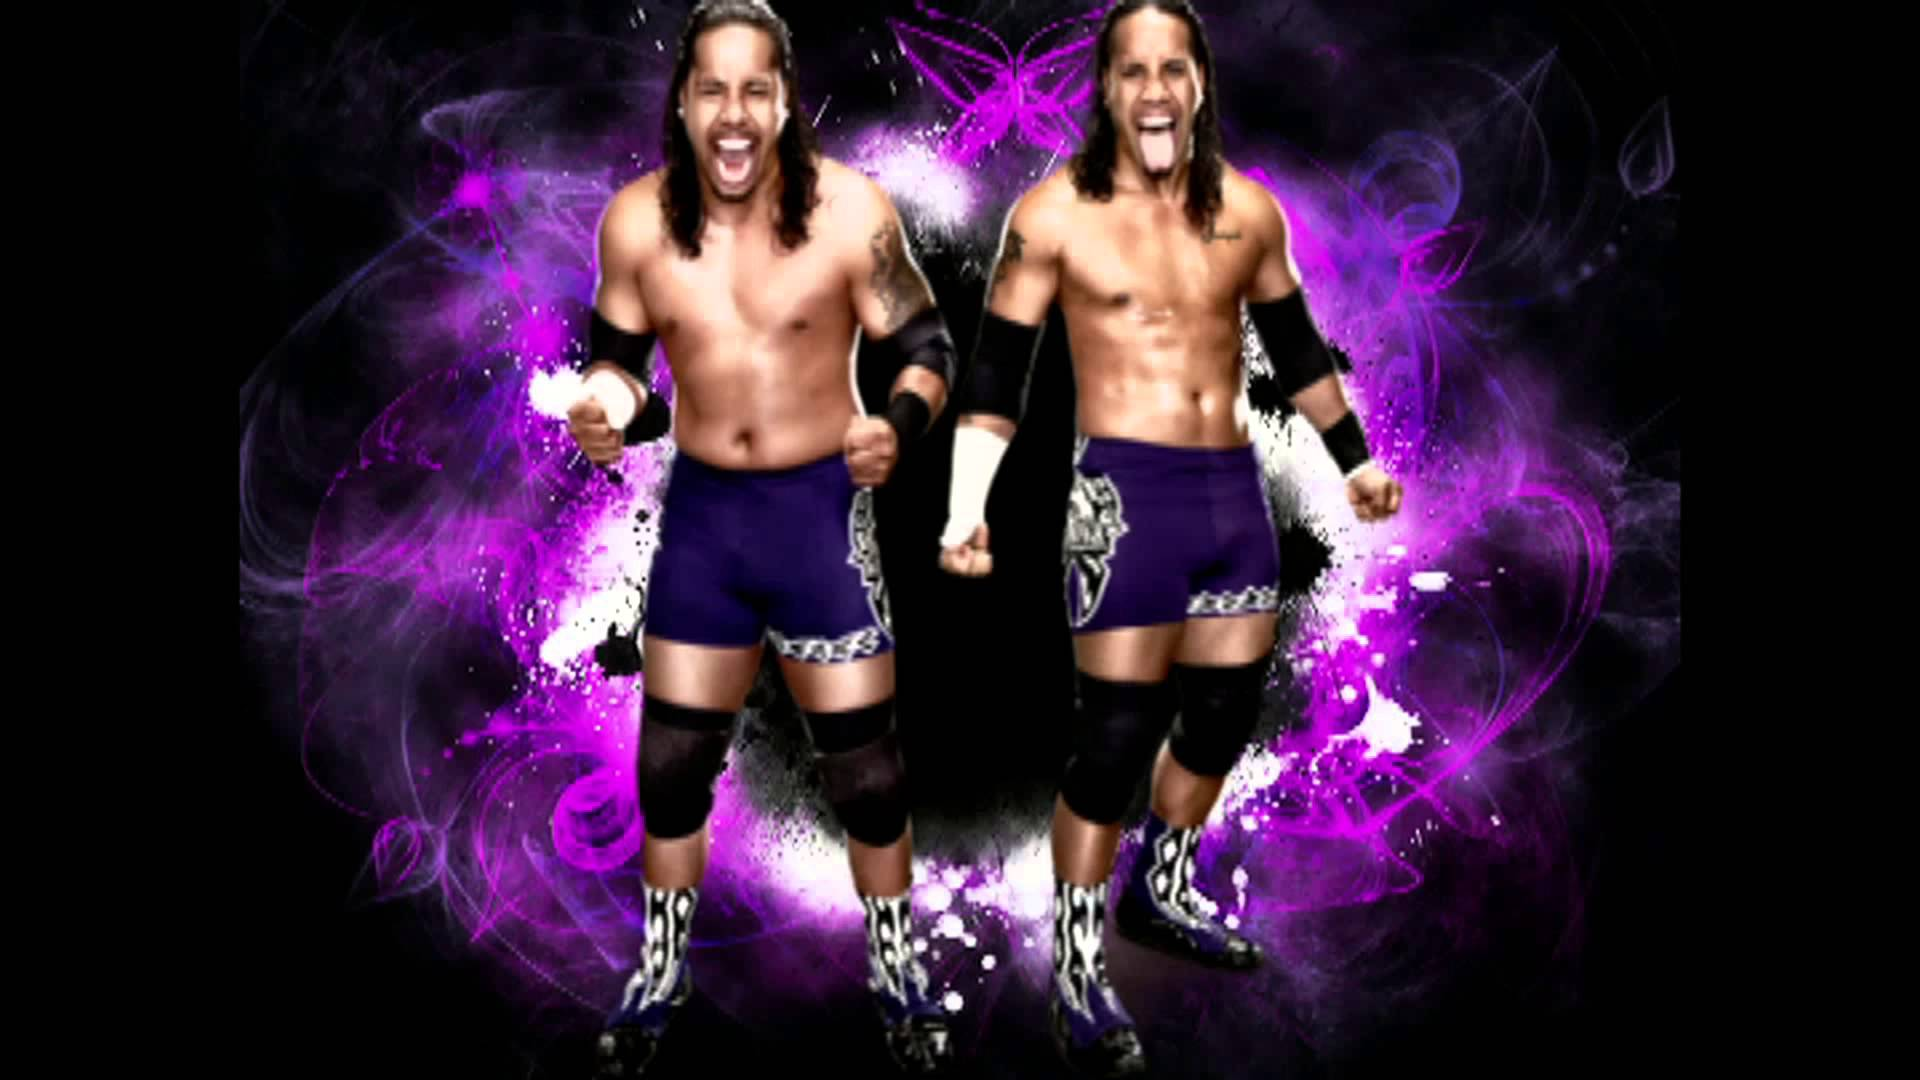 Usos wallpapers wallpaper cave - The usos theme song so close now ...